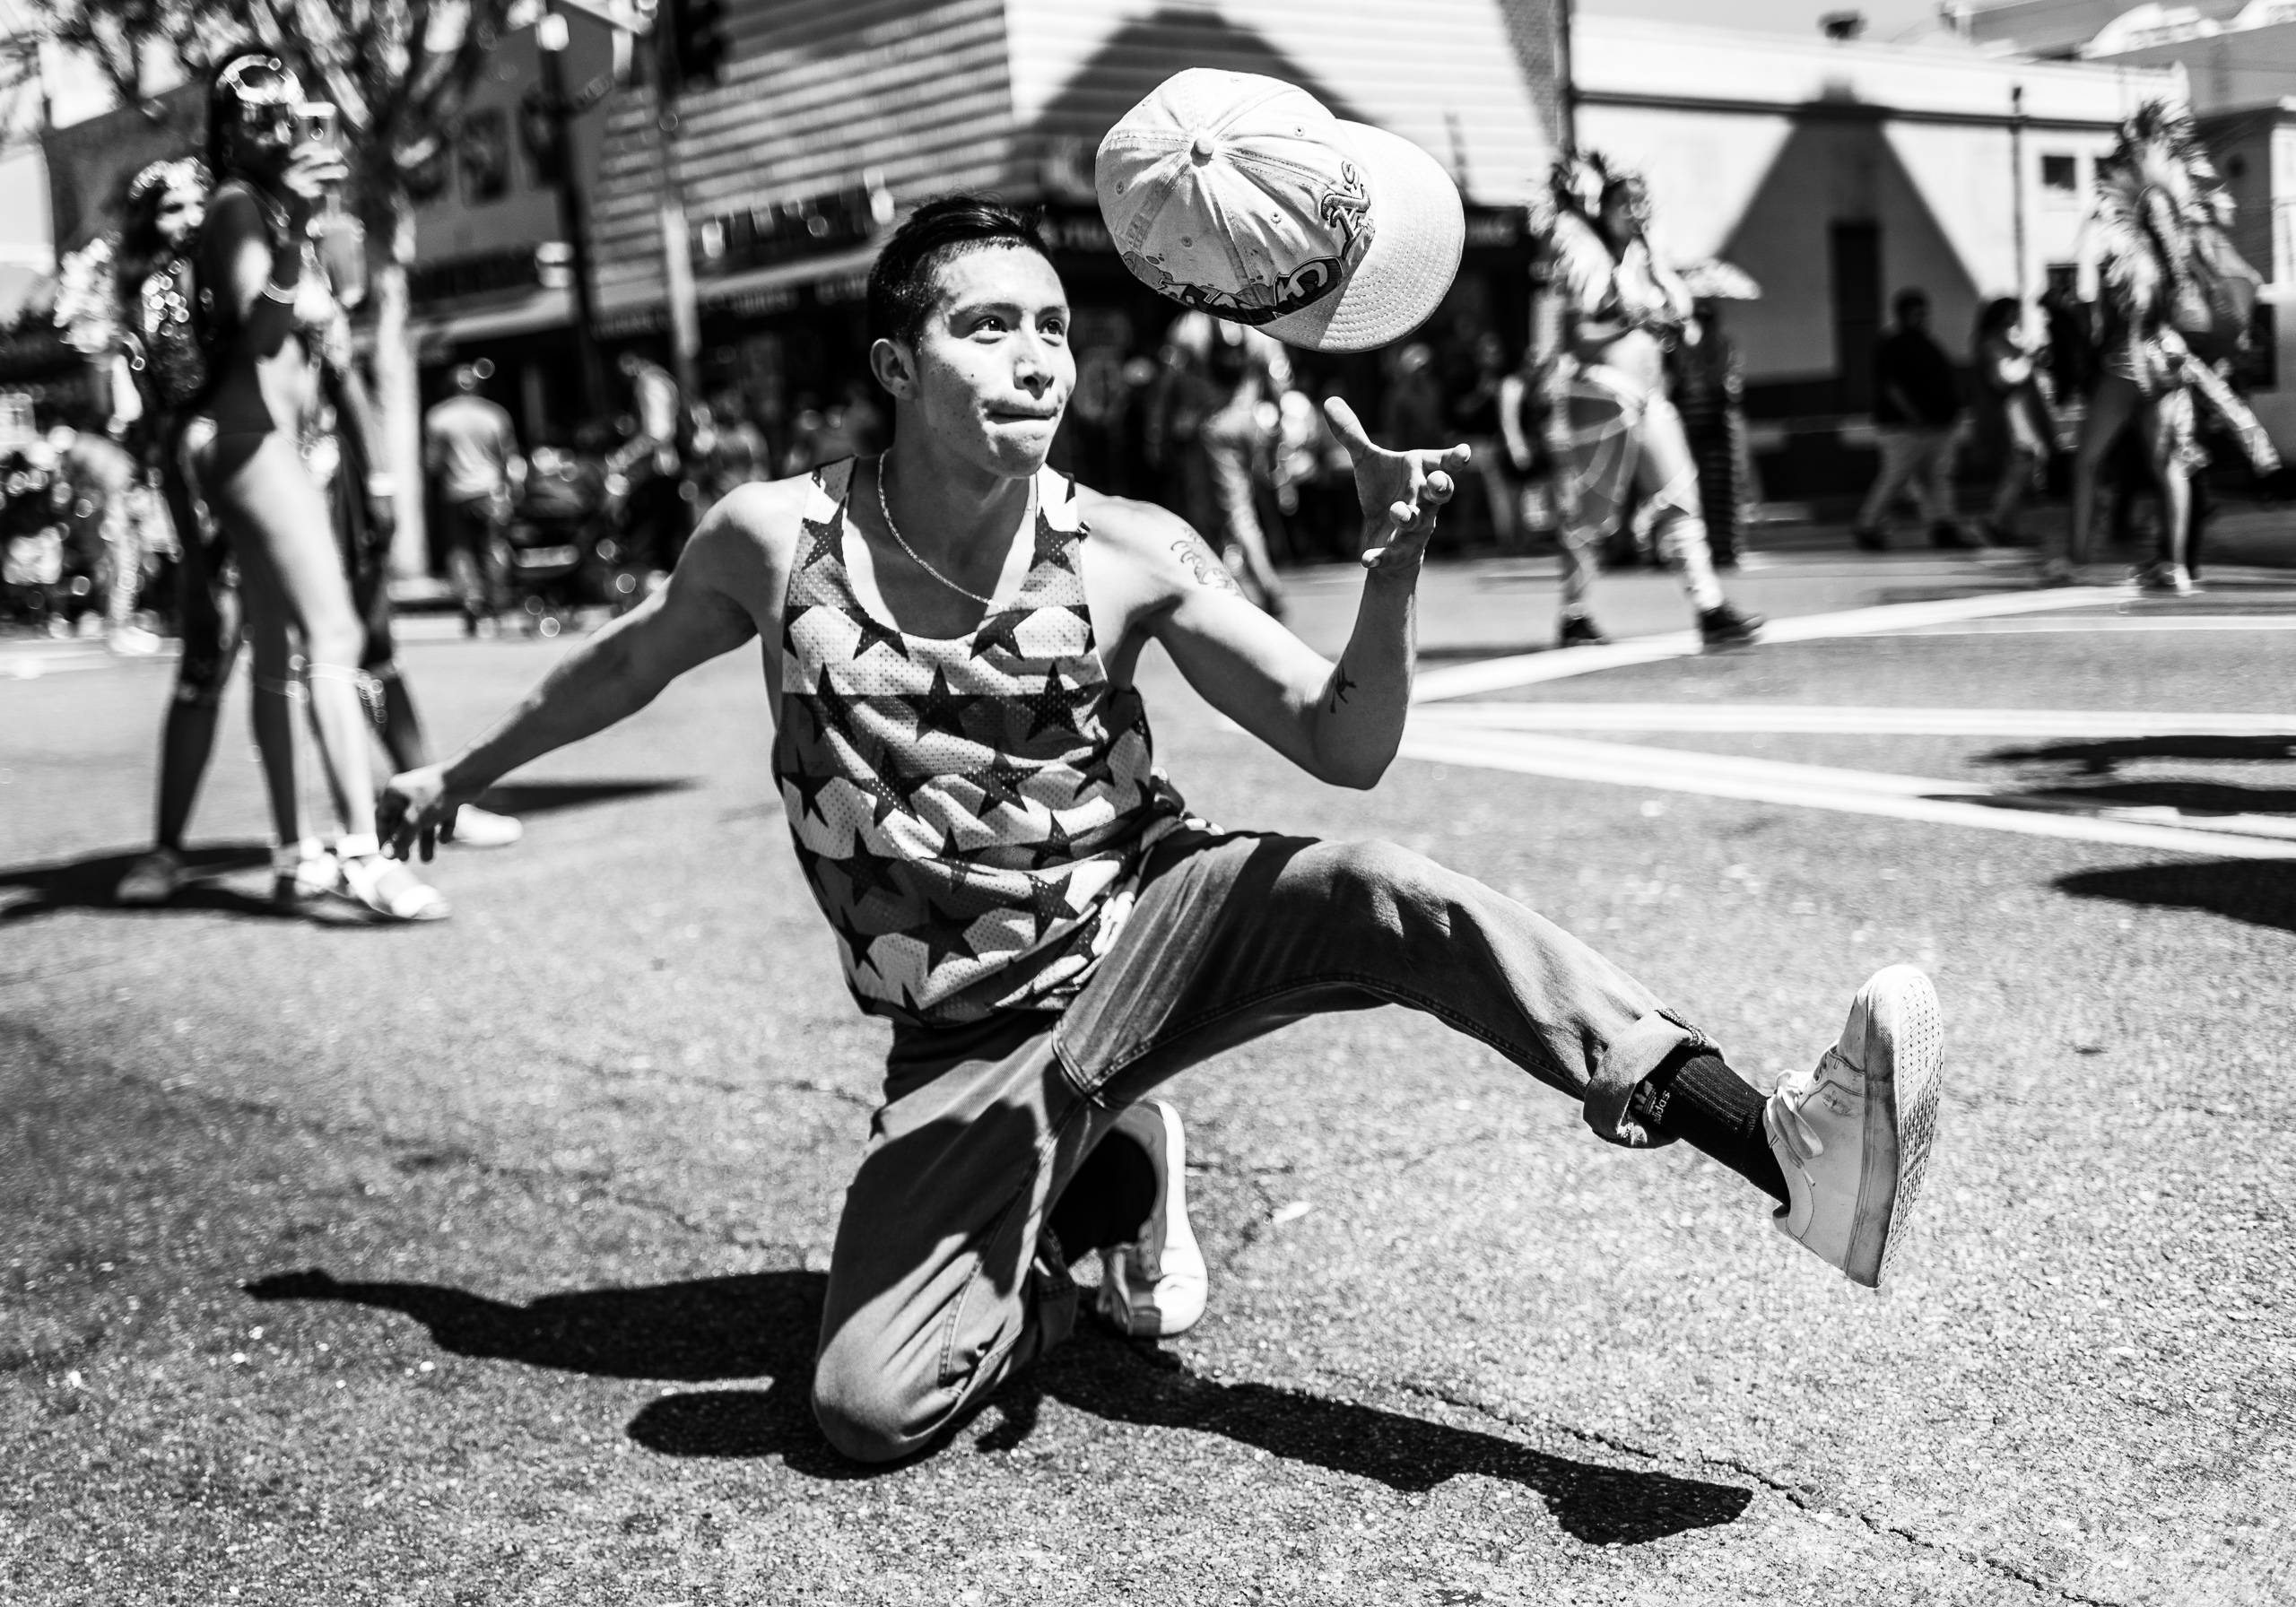 Francisco Andres dancing on Hollywood Blvd during the Hollywood Carnival Parade. He has one leg up in the air, and has just thrown his hat under it. He's now catching the airborne hat with his hand